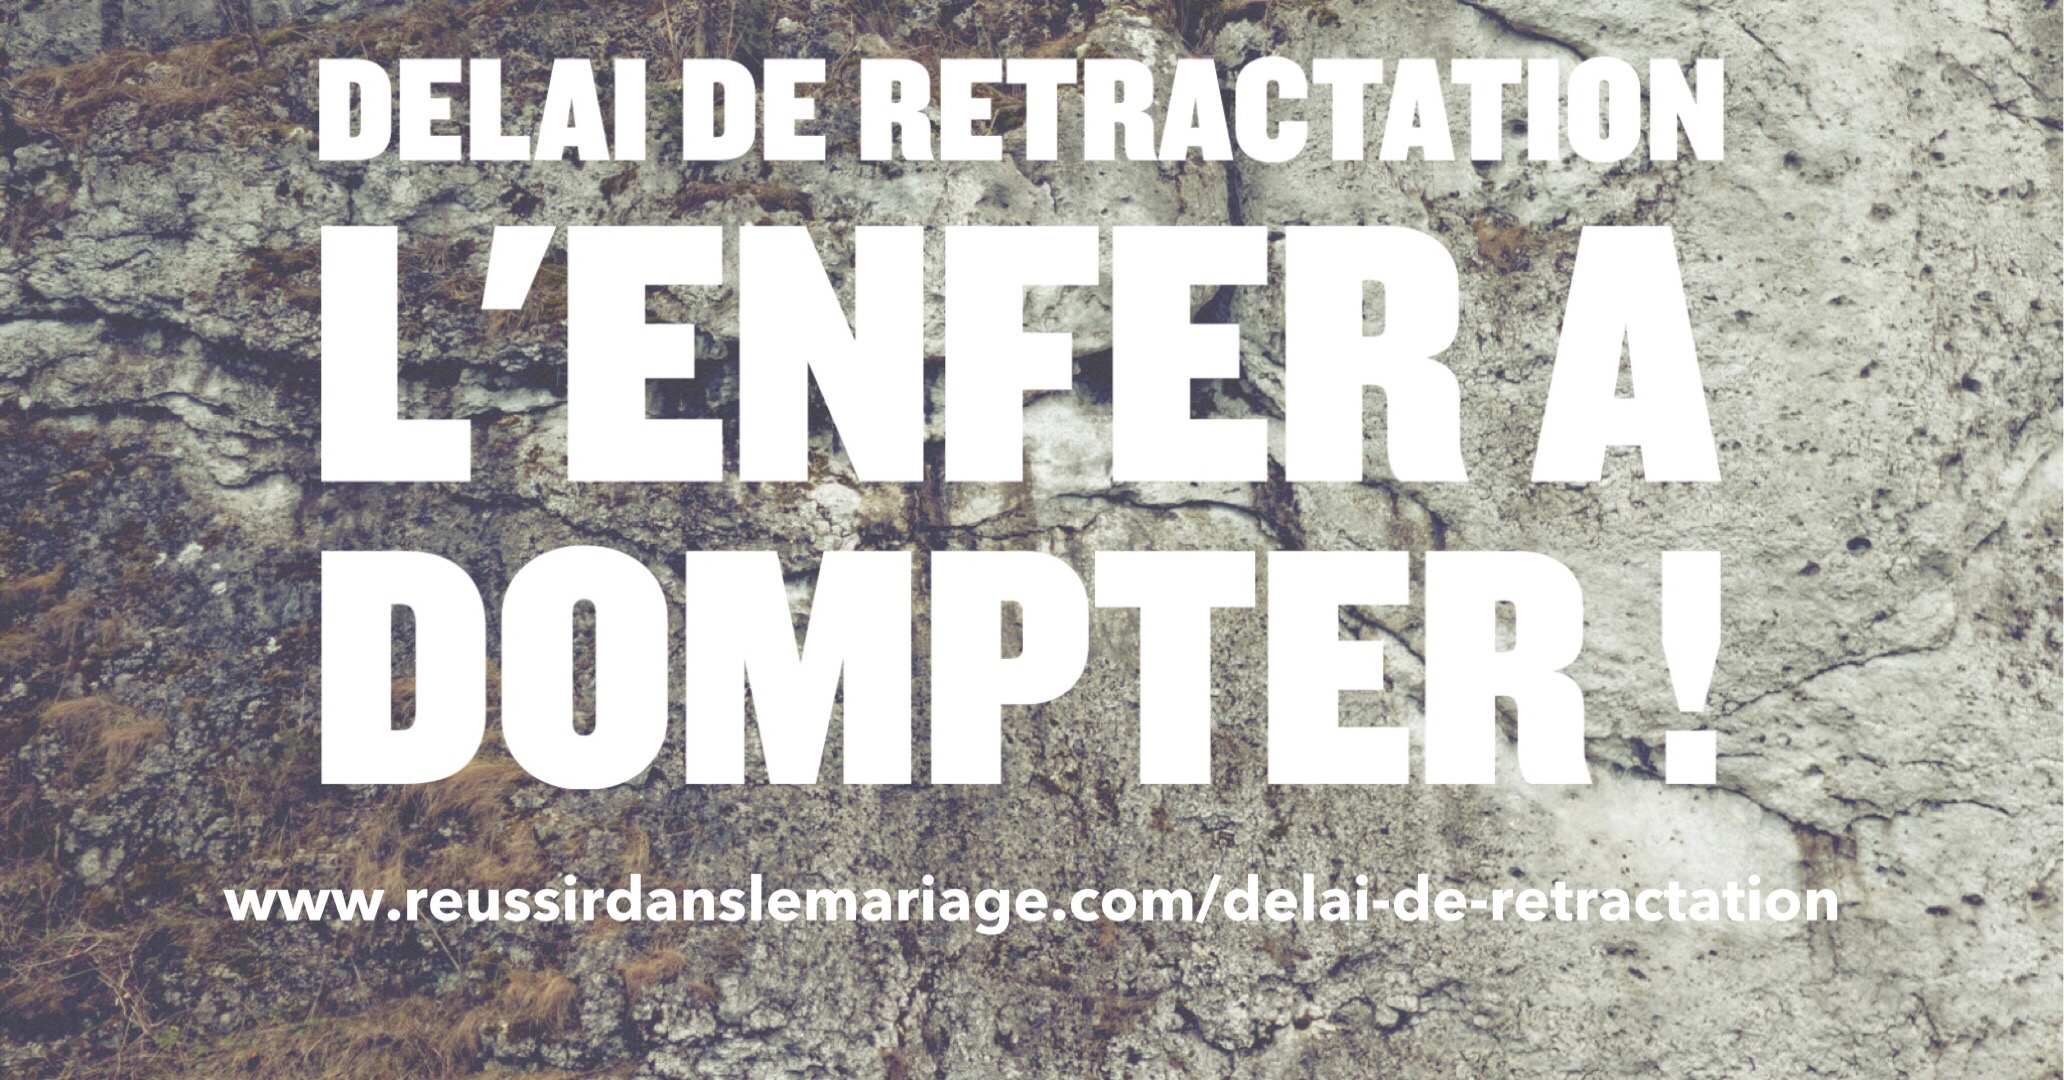 delai de retractation